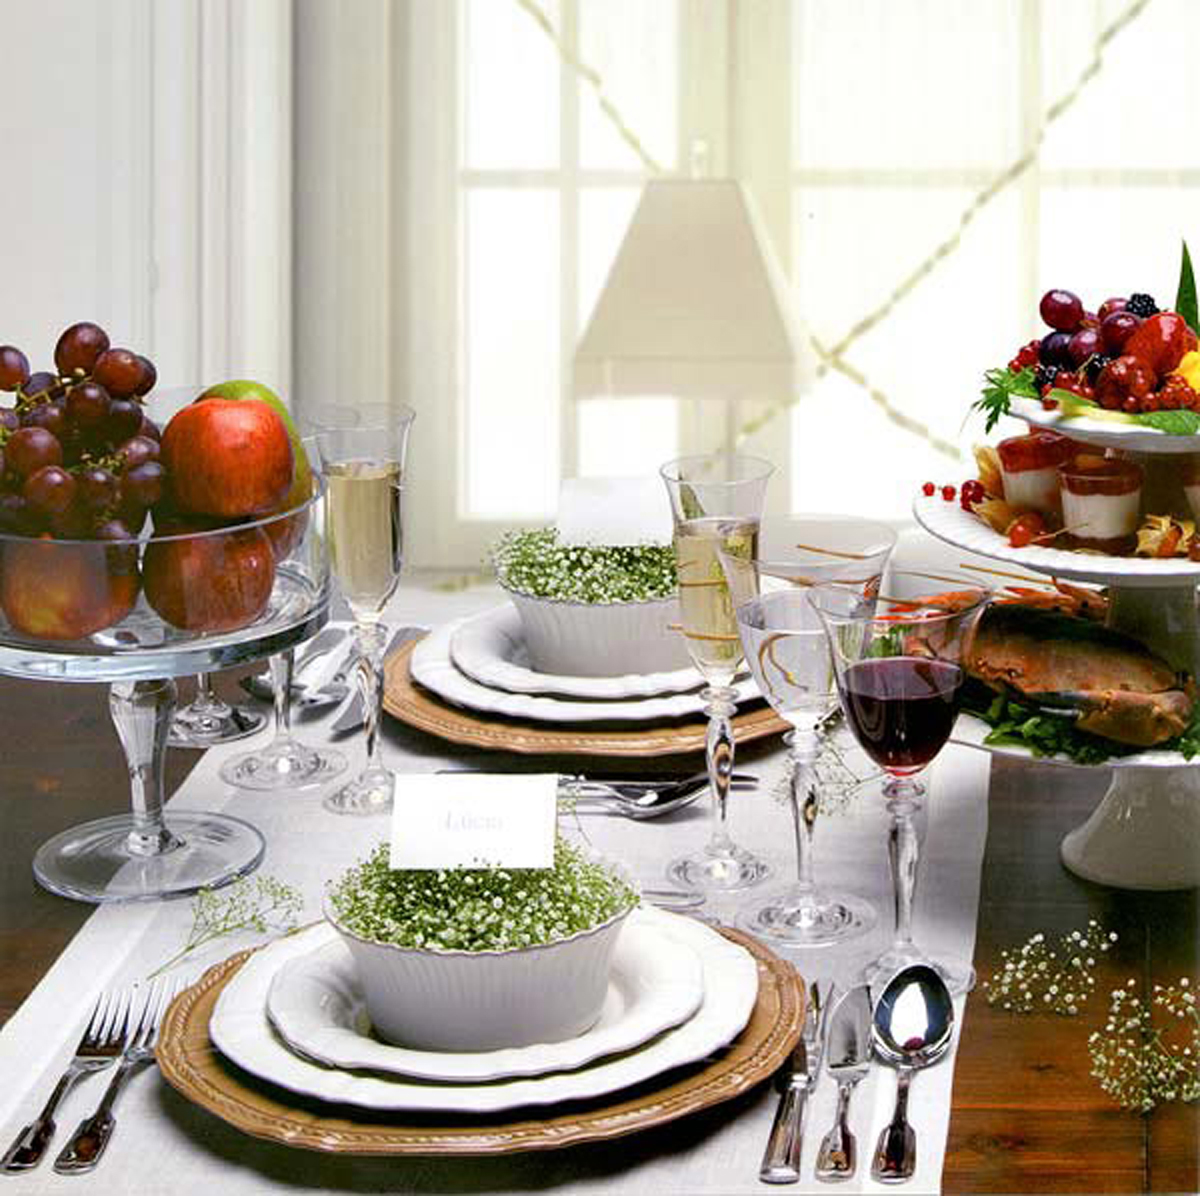 Dining table dining table decor photos for Dining table top decor